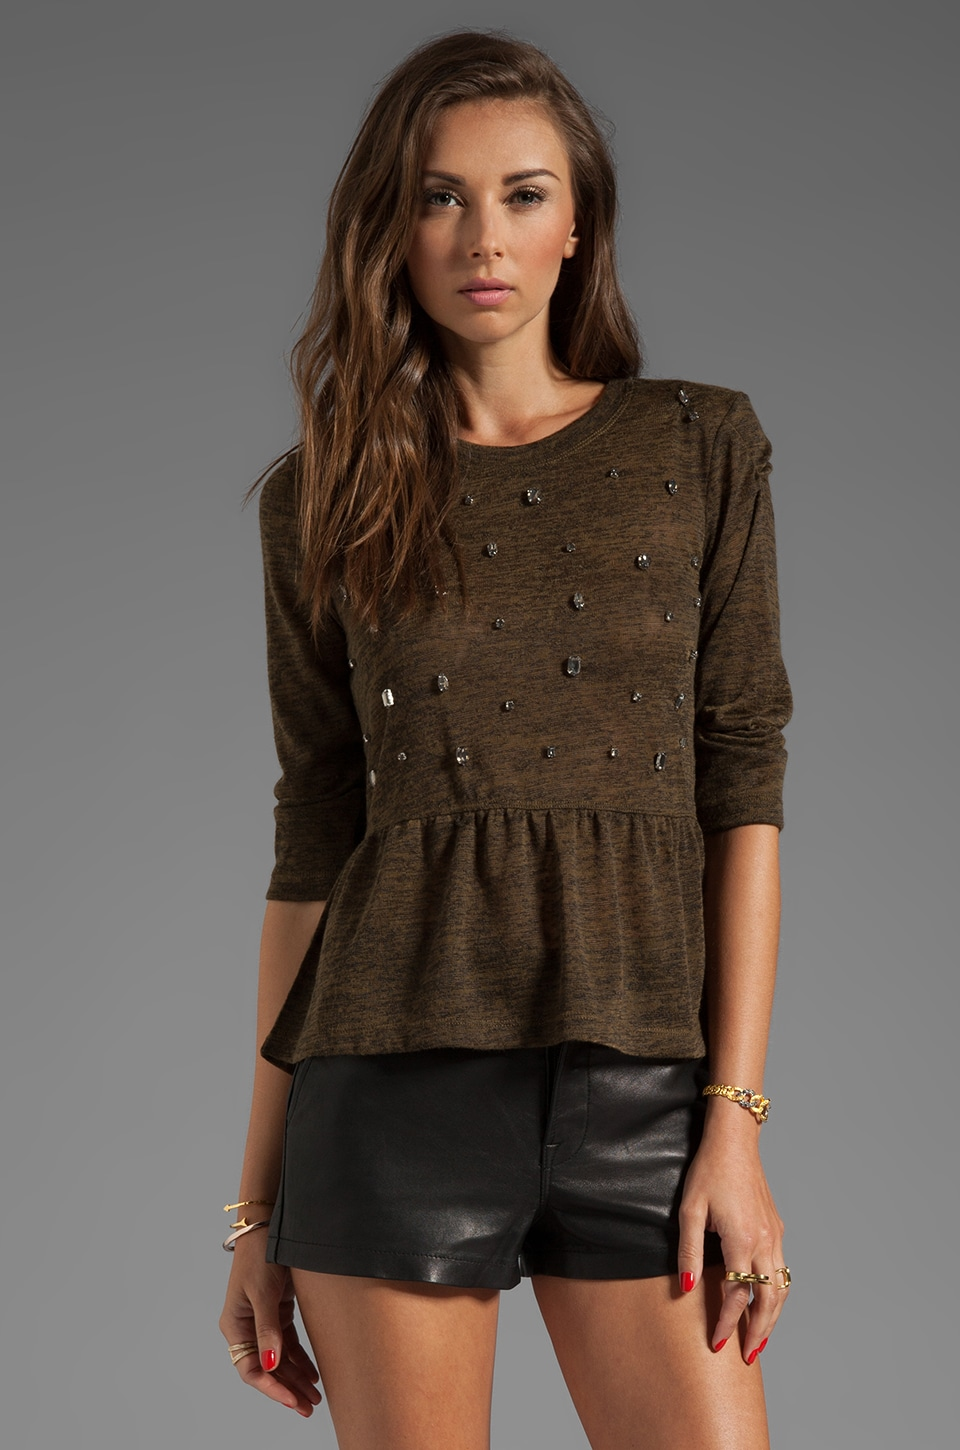 Dolce Vita Yucca Top in Army Green